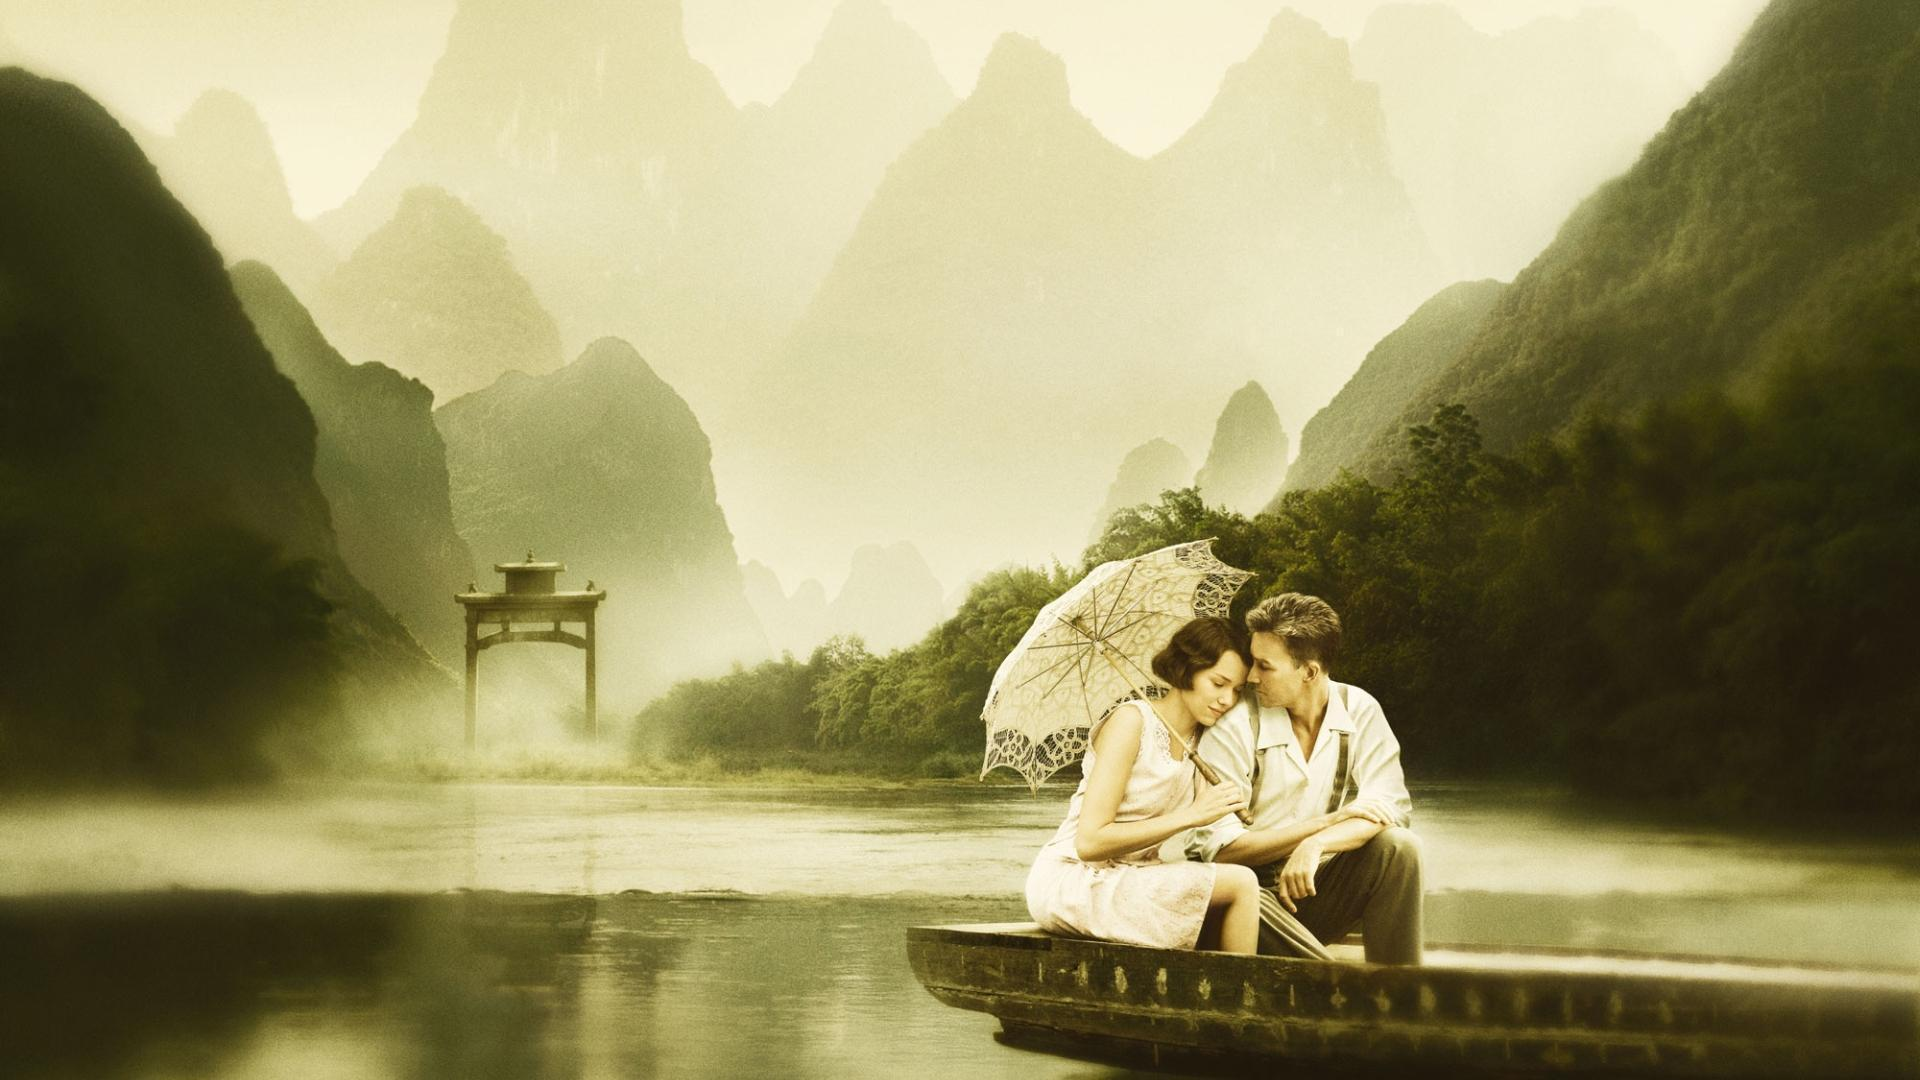 Lovers Dating Hd Wallpaper 1920x1080 Download Wallpapers Page